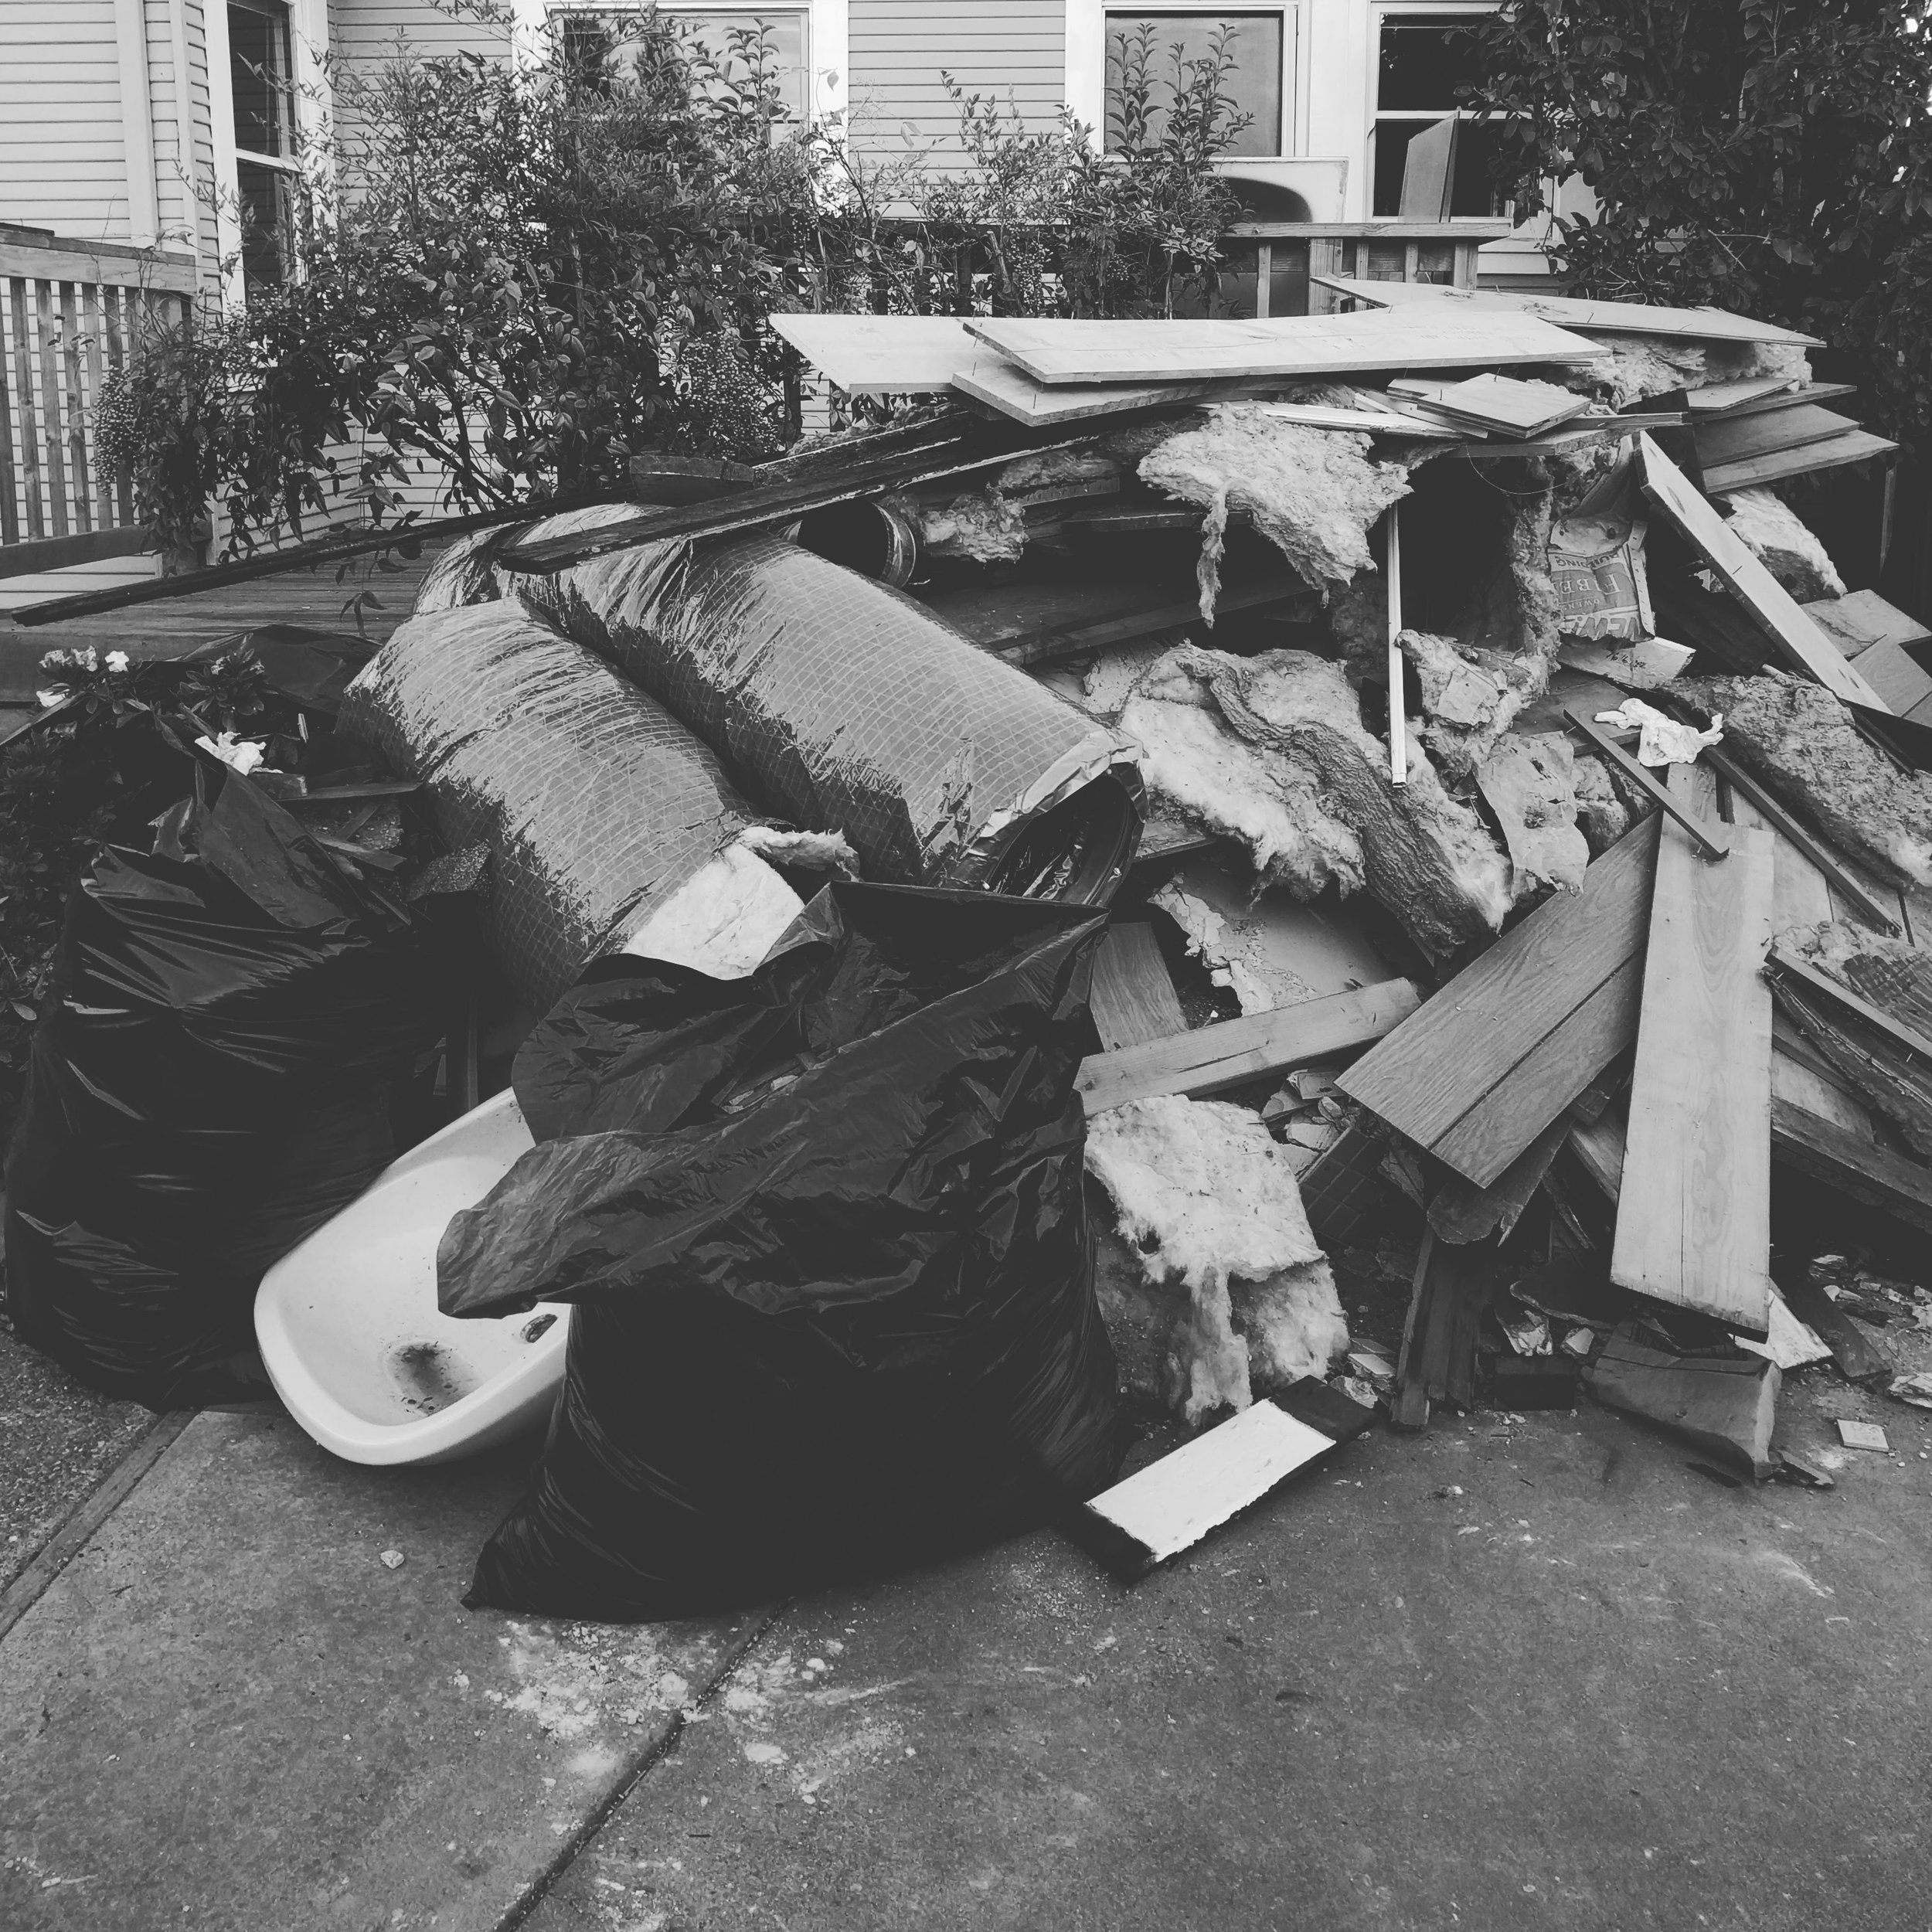 One of the garbage piles